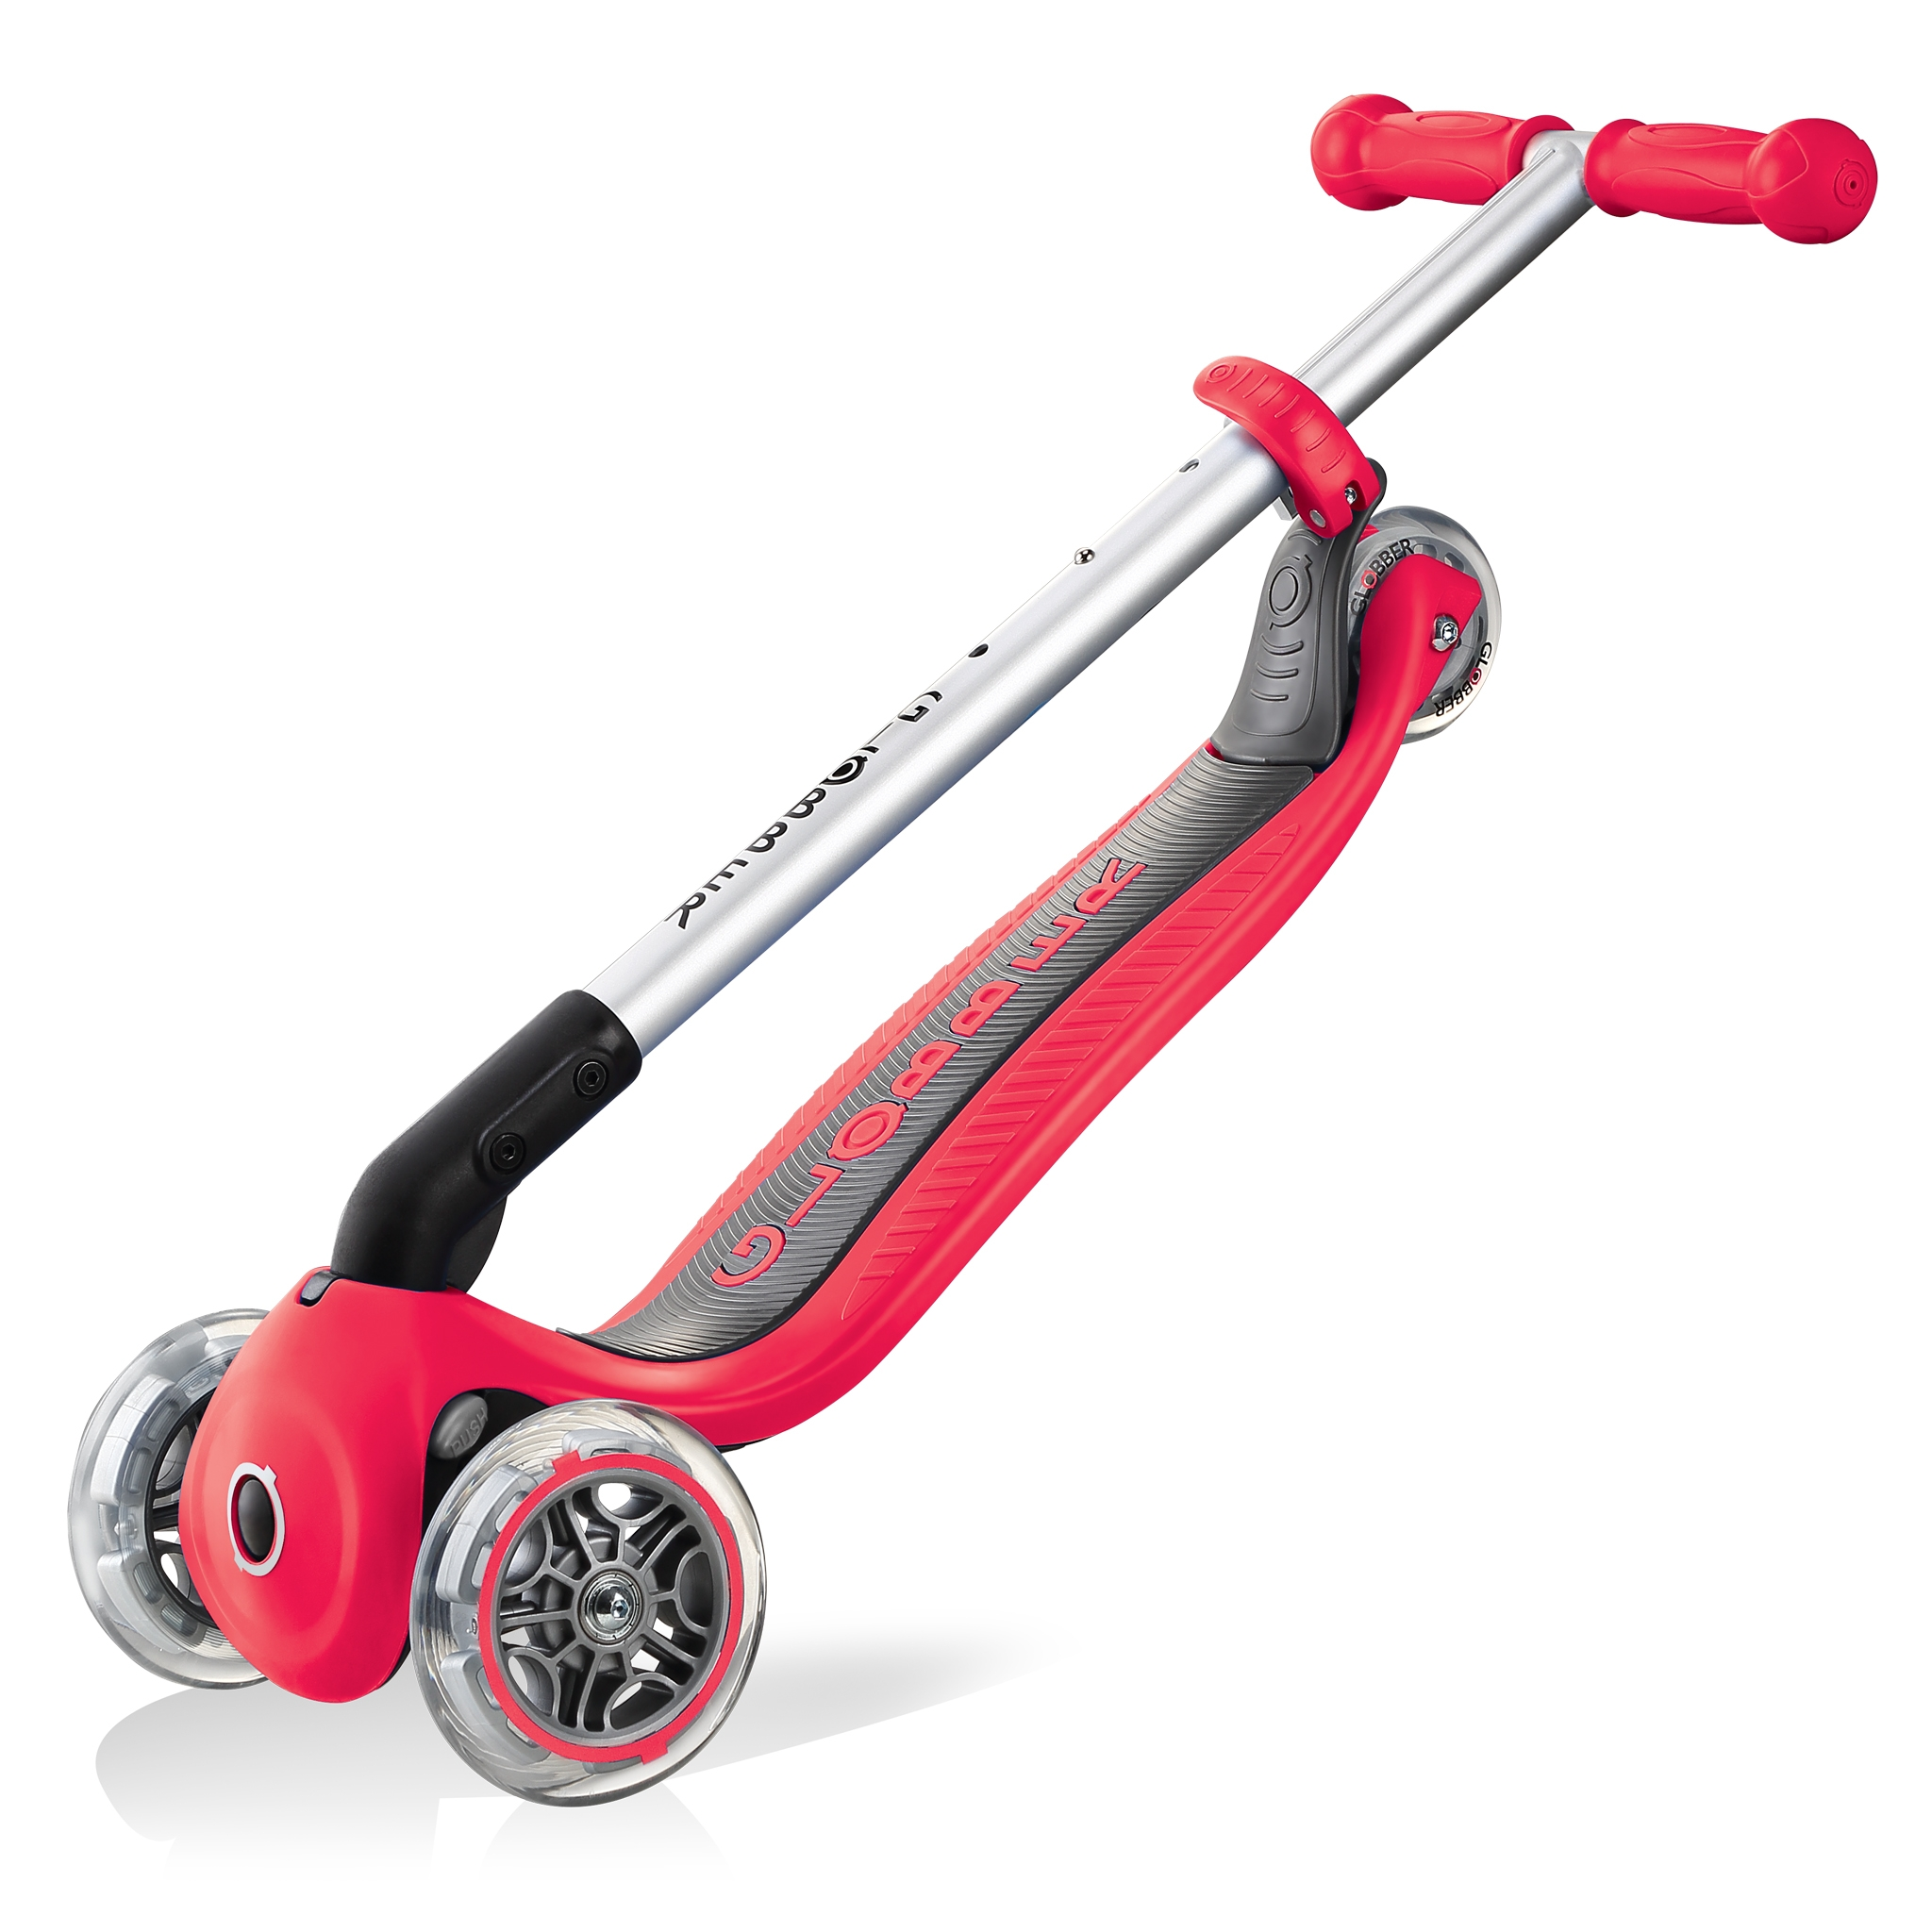 PRIMO-FOLDABLE-3-wheel-foldable-scooter-for-kids-trolley-mode-new-red